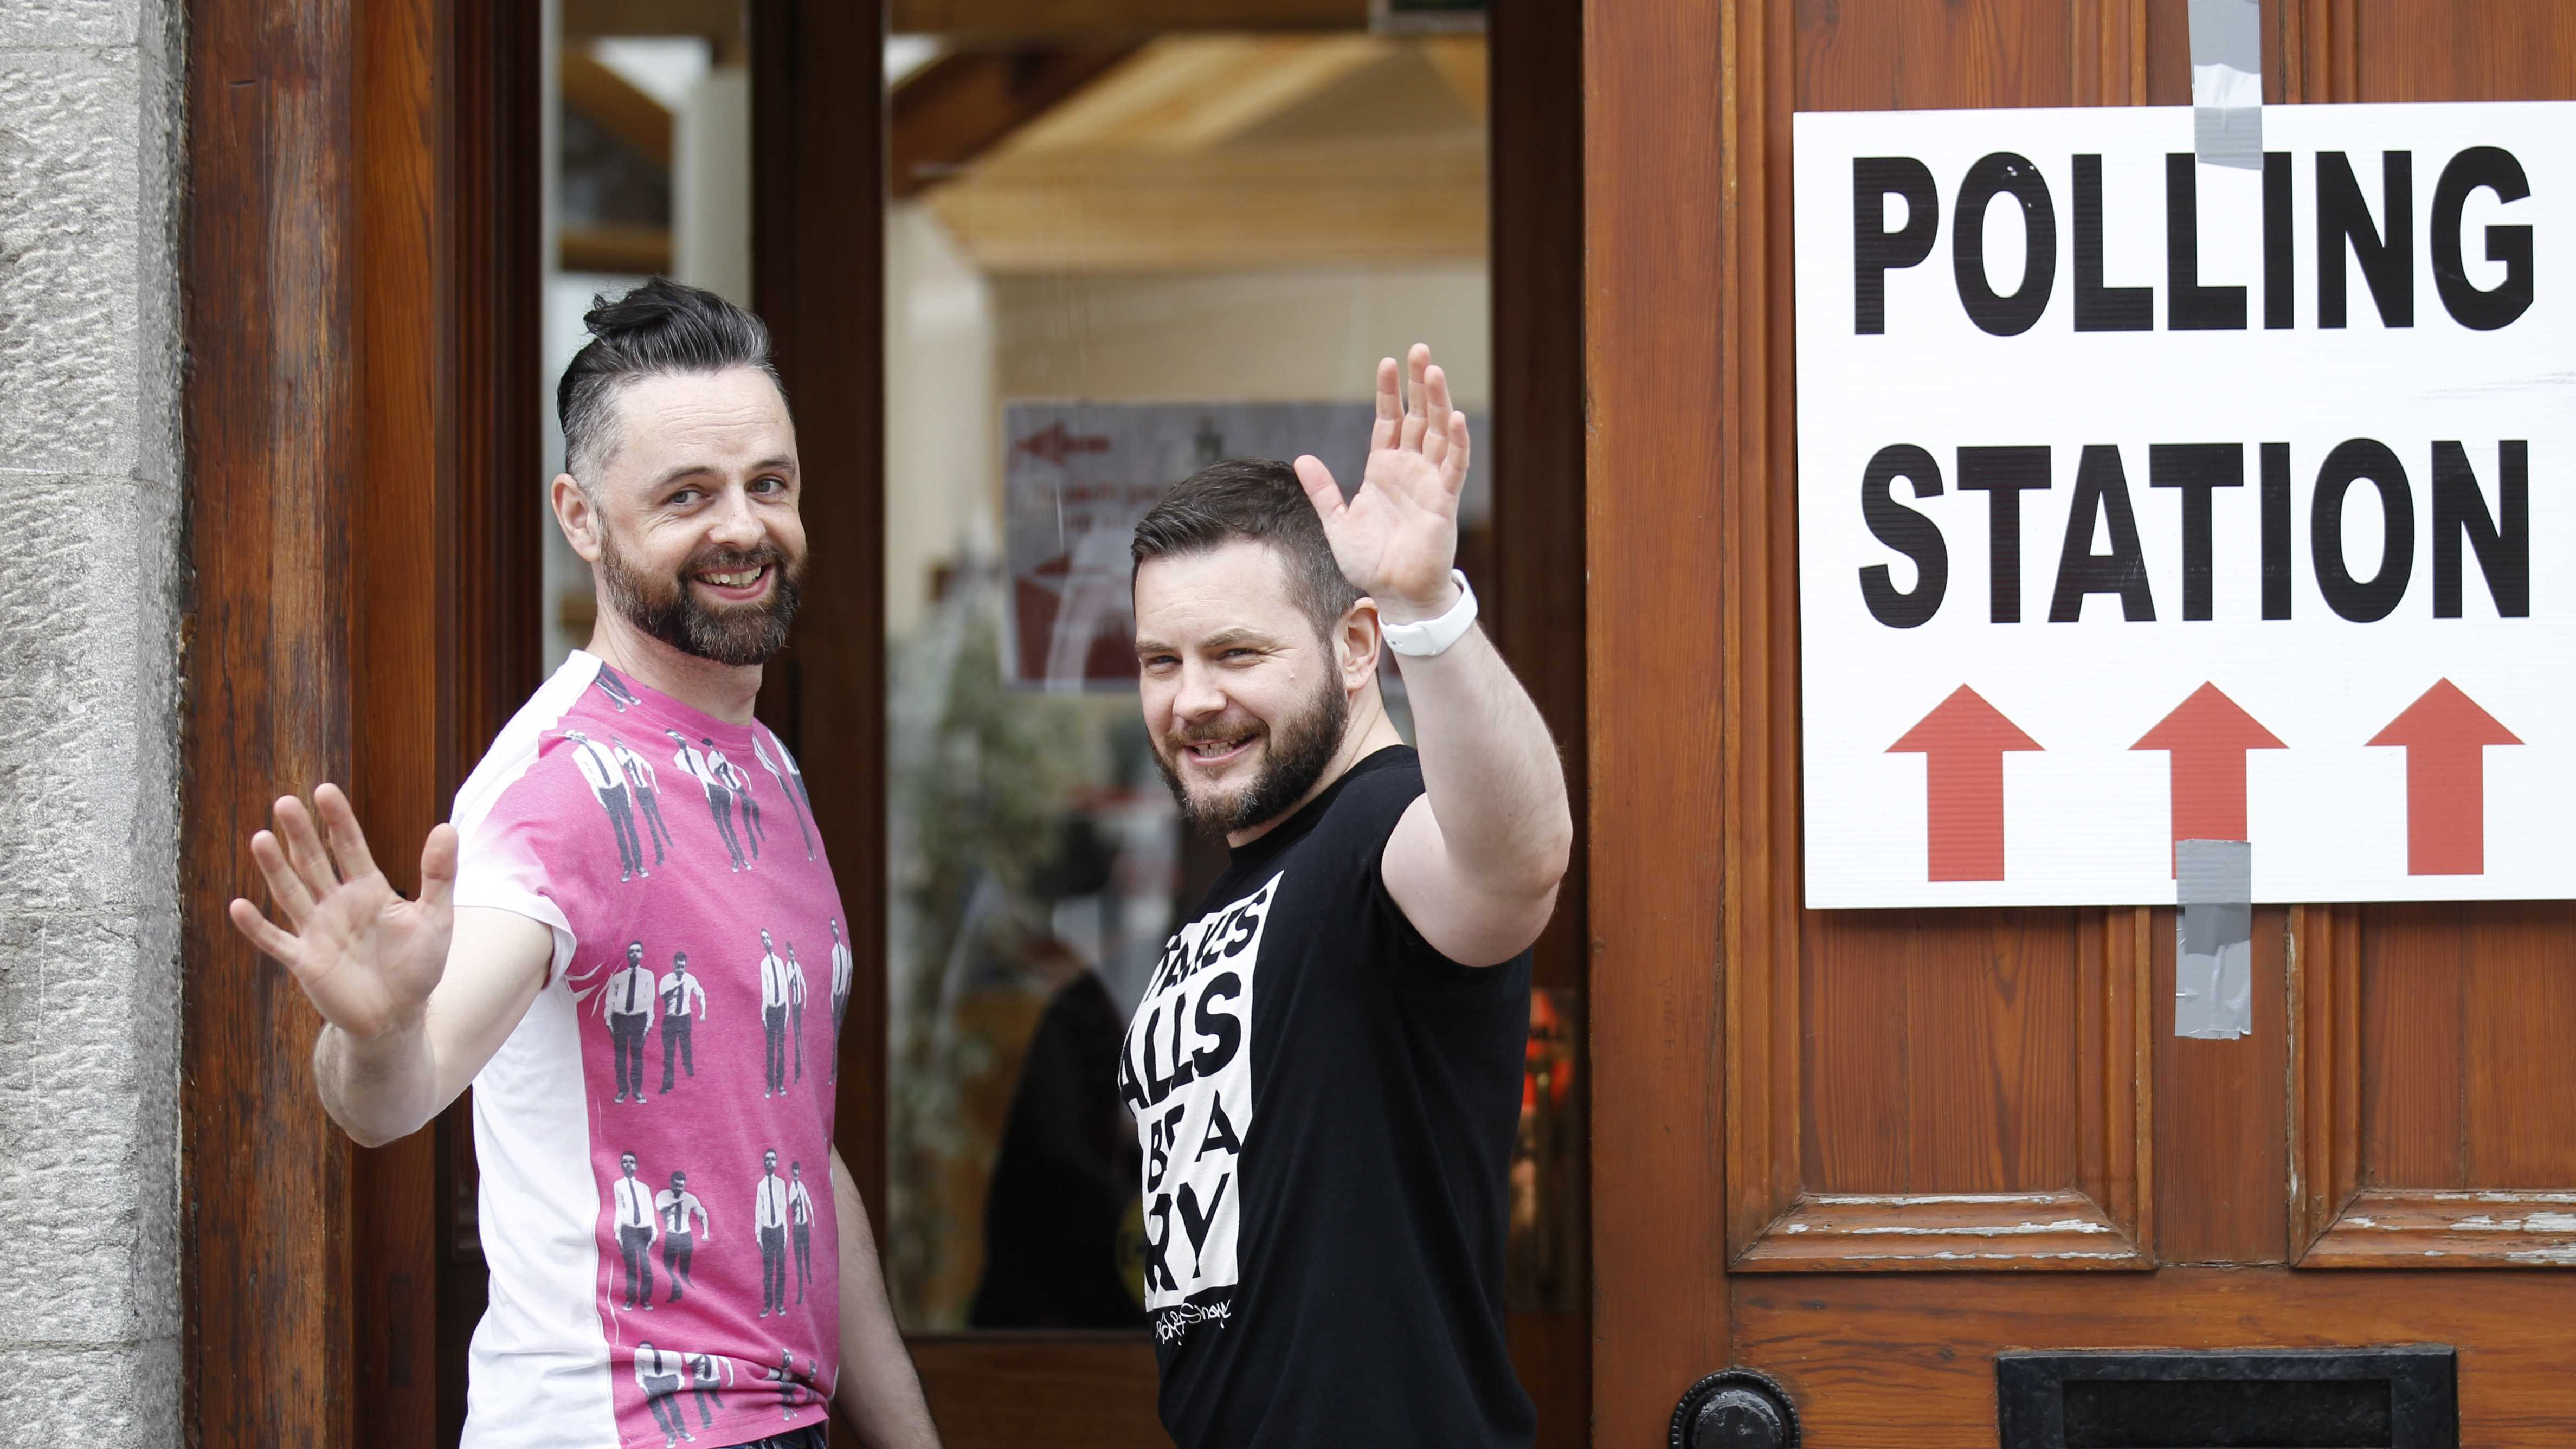 Partners Adrian, left and Shane, arrive to vote at a polling station in Drogheda, Ireland, Friday, May 22, 2015. Ireland began voting Friday in a referendum on Gay marriage.